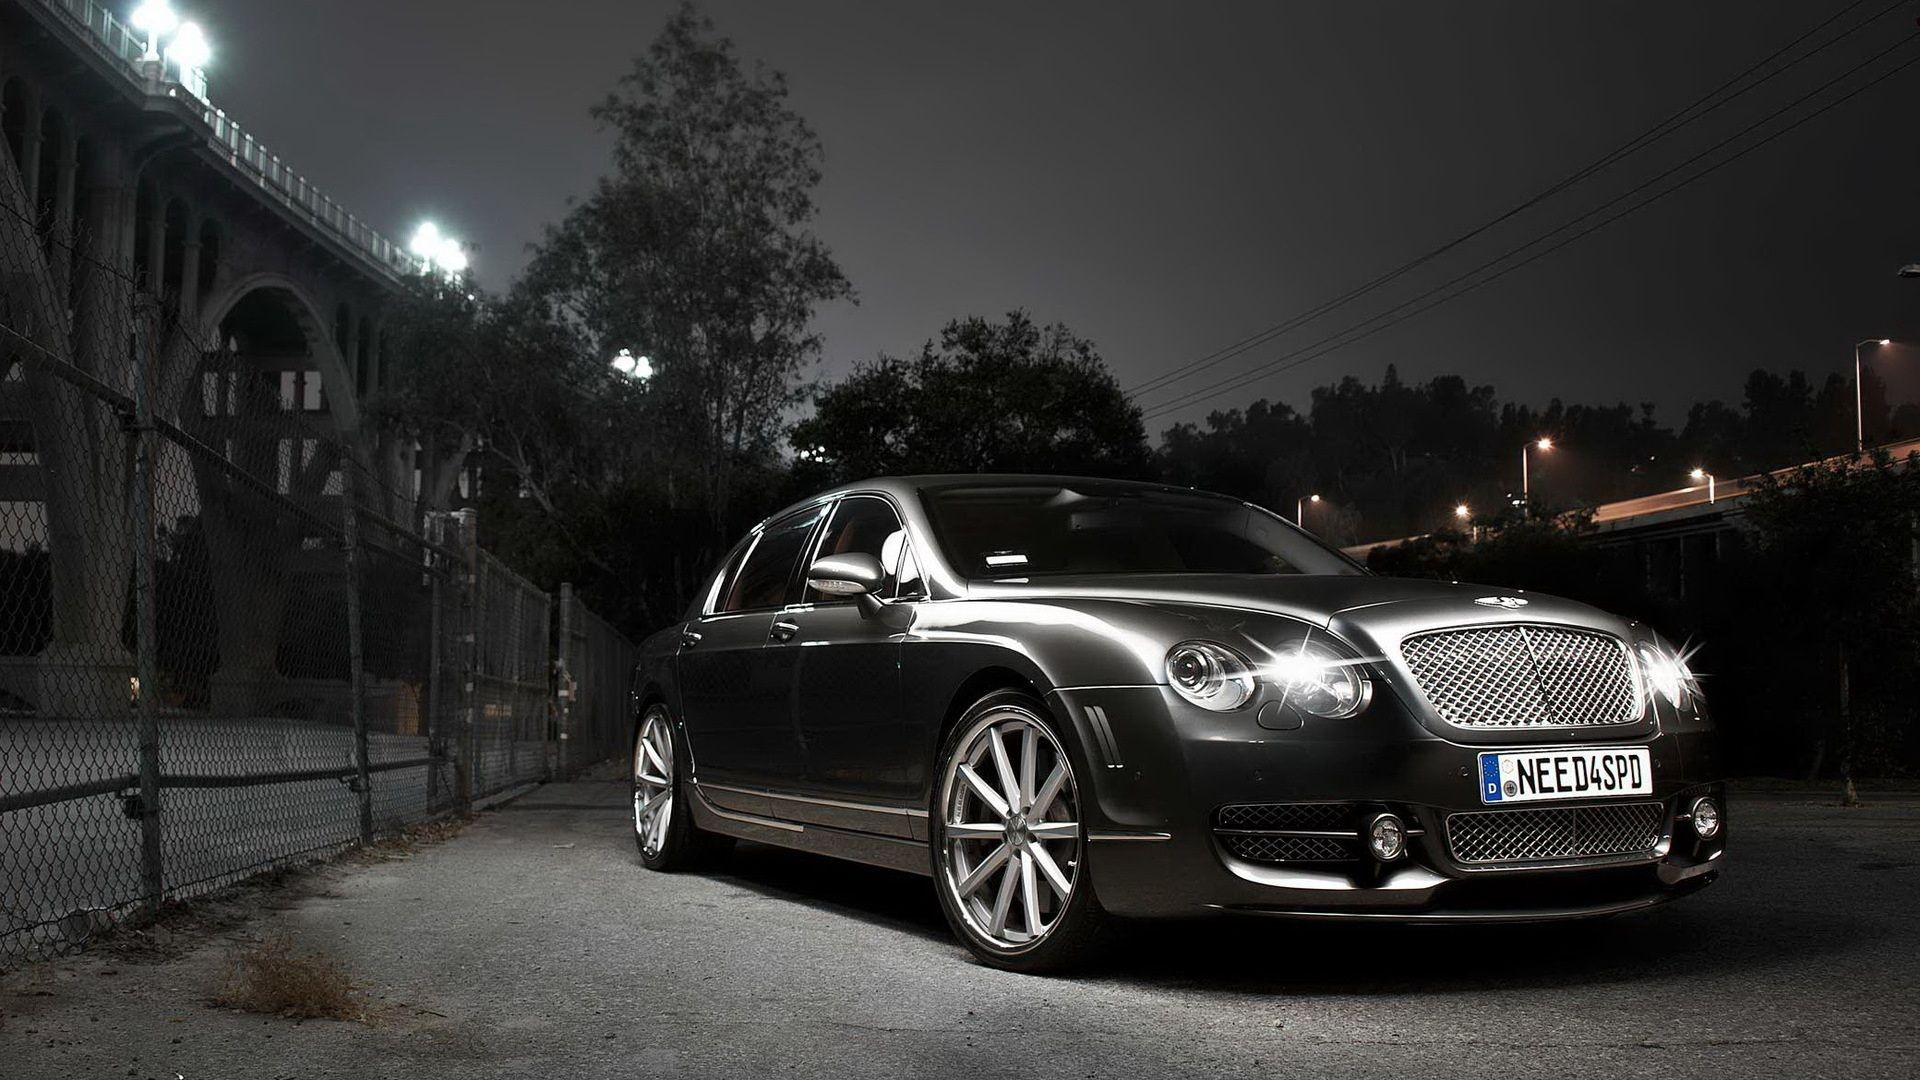 Bentley Car Wallpaper >> Bentley Grand Convertible Wallpaper Hd Car Wallpapers Wallpapers